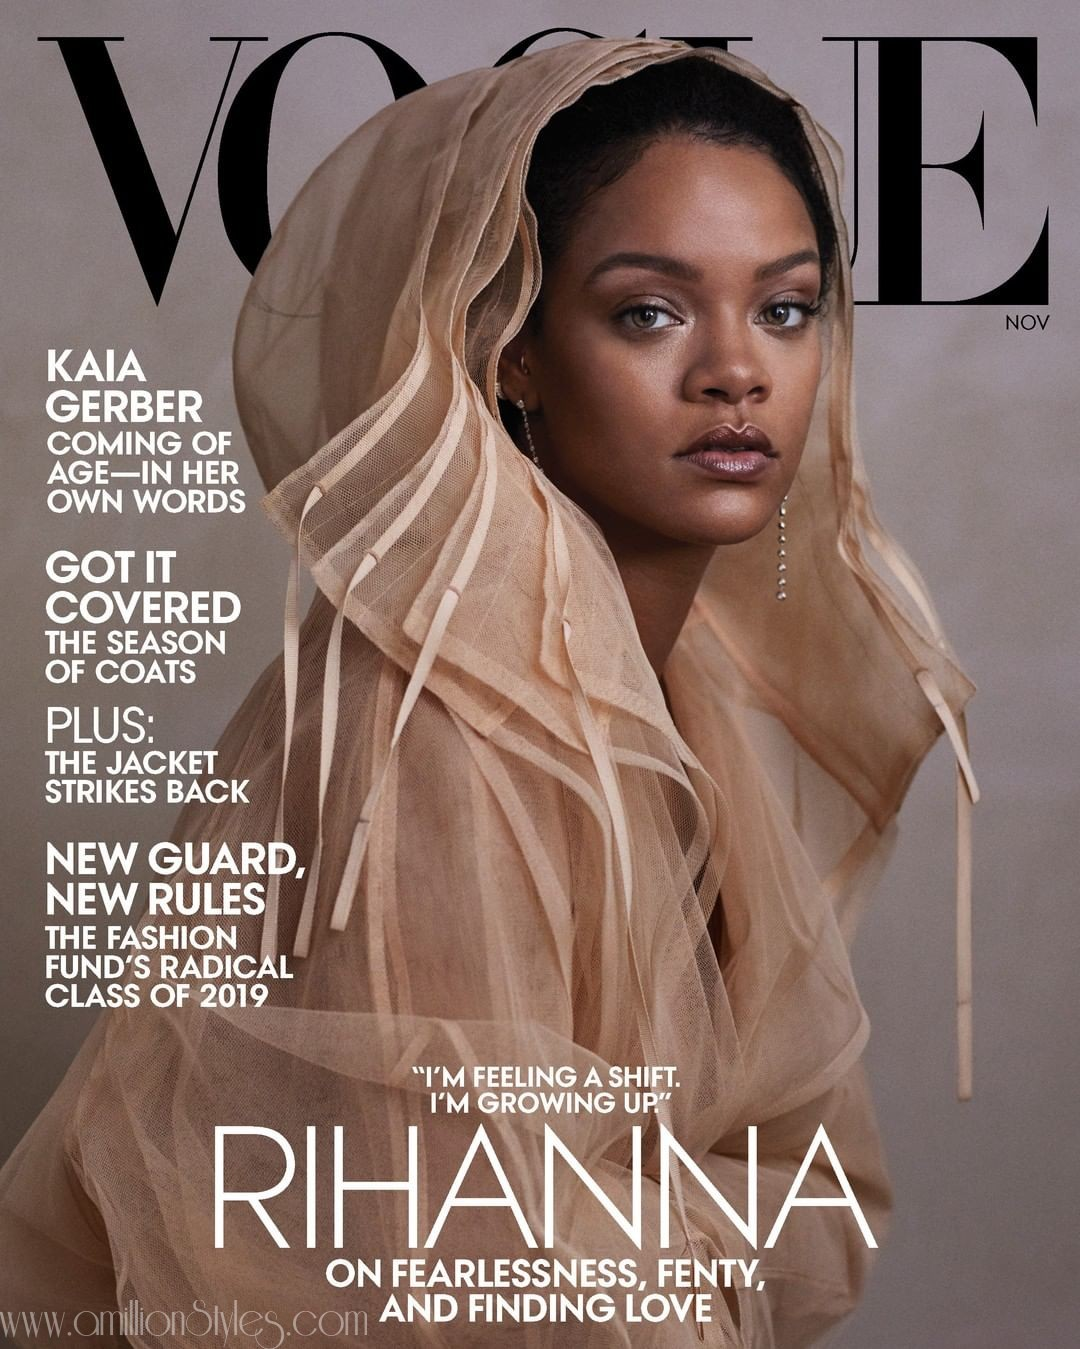 Rihanna Is The Cover Girl For The November Issue Of Vogue